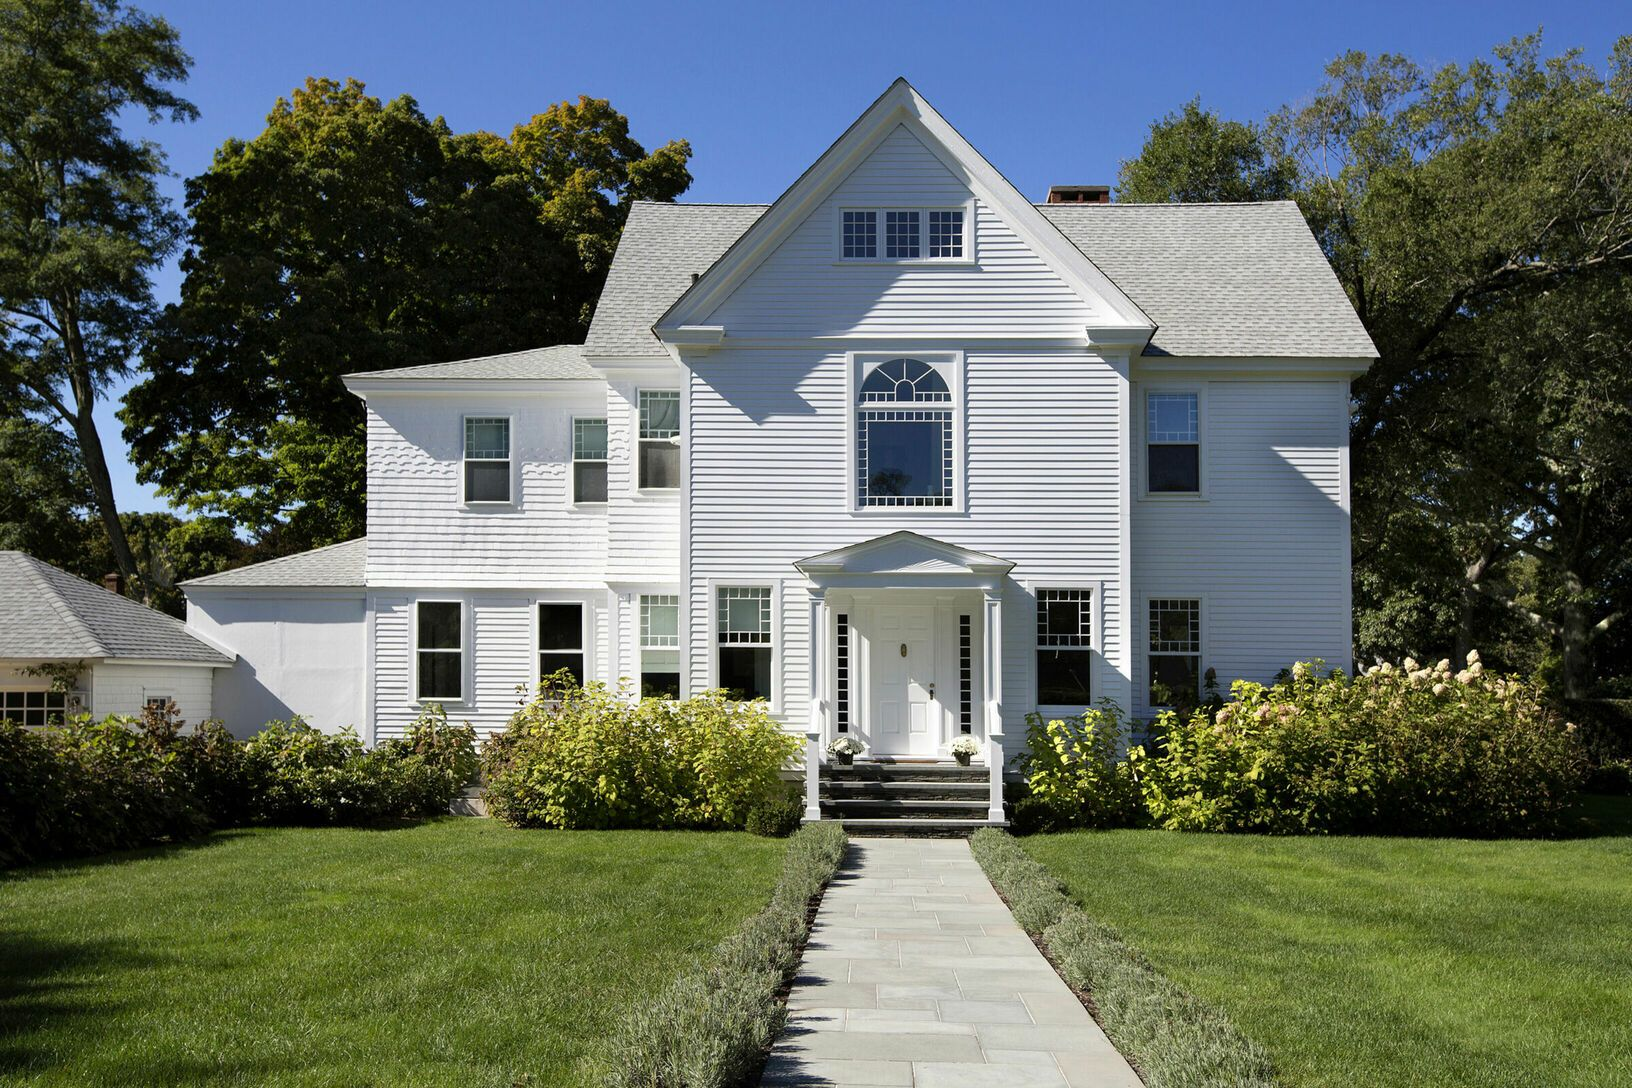 Pin By Clint Connor On Hamptons Hideaway Home Buying Buying Your First Home House Styles